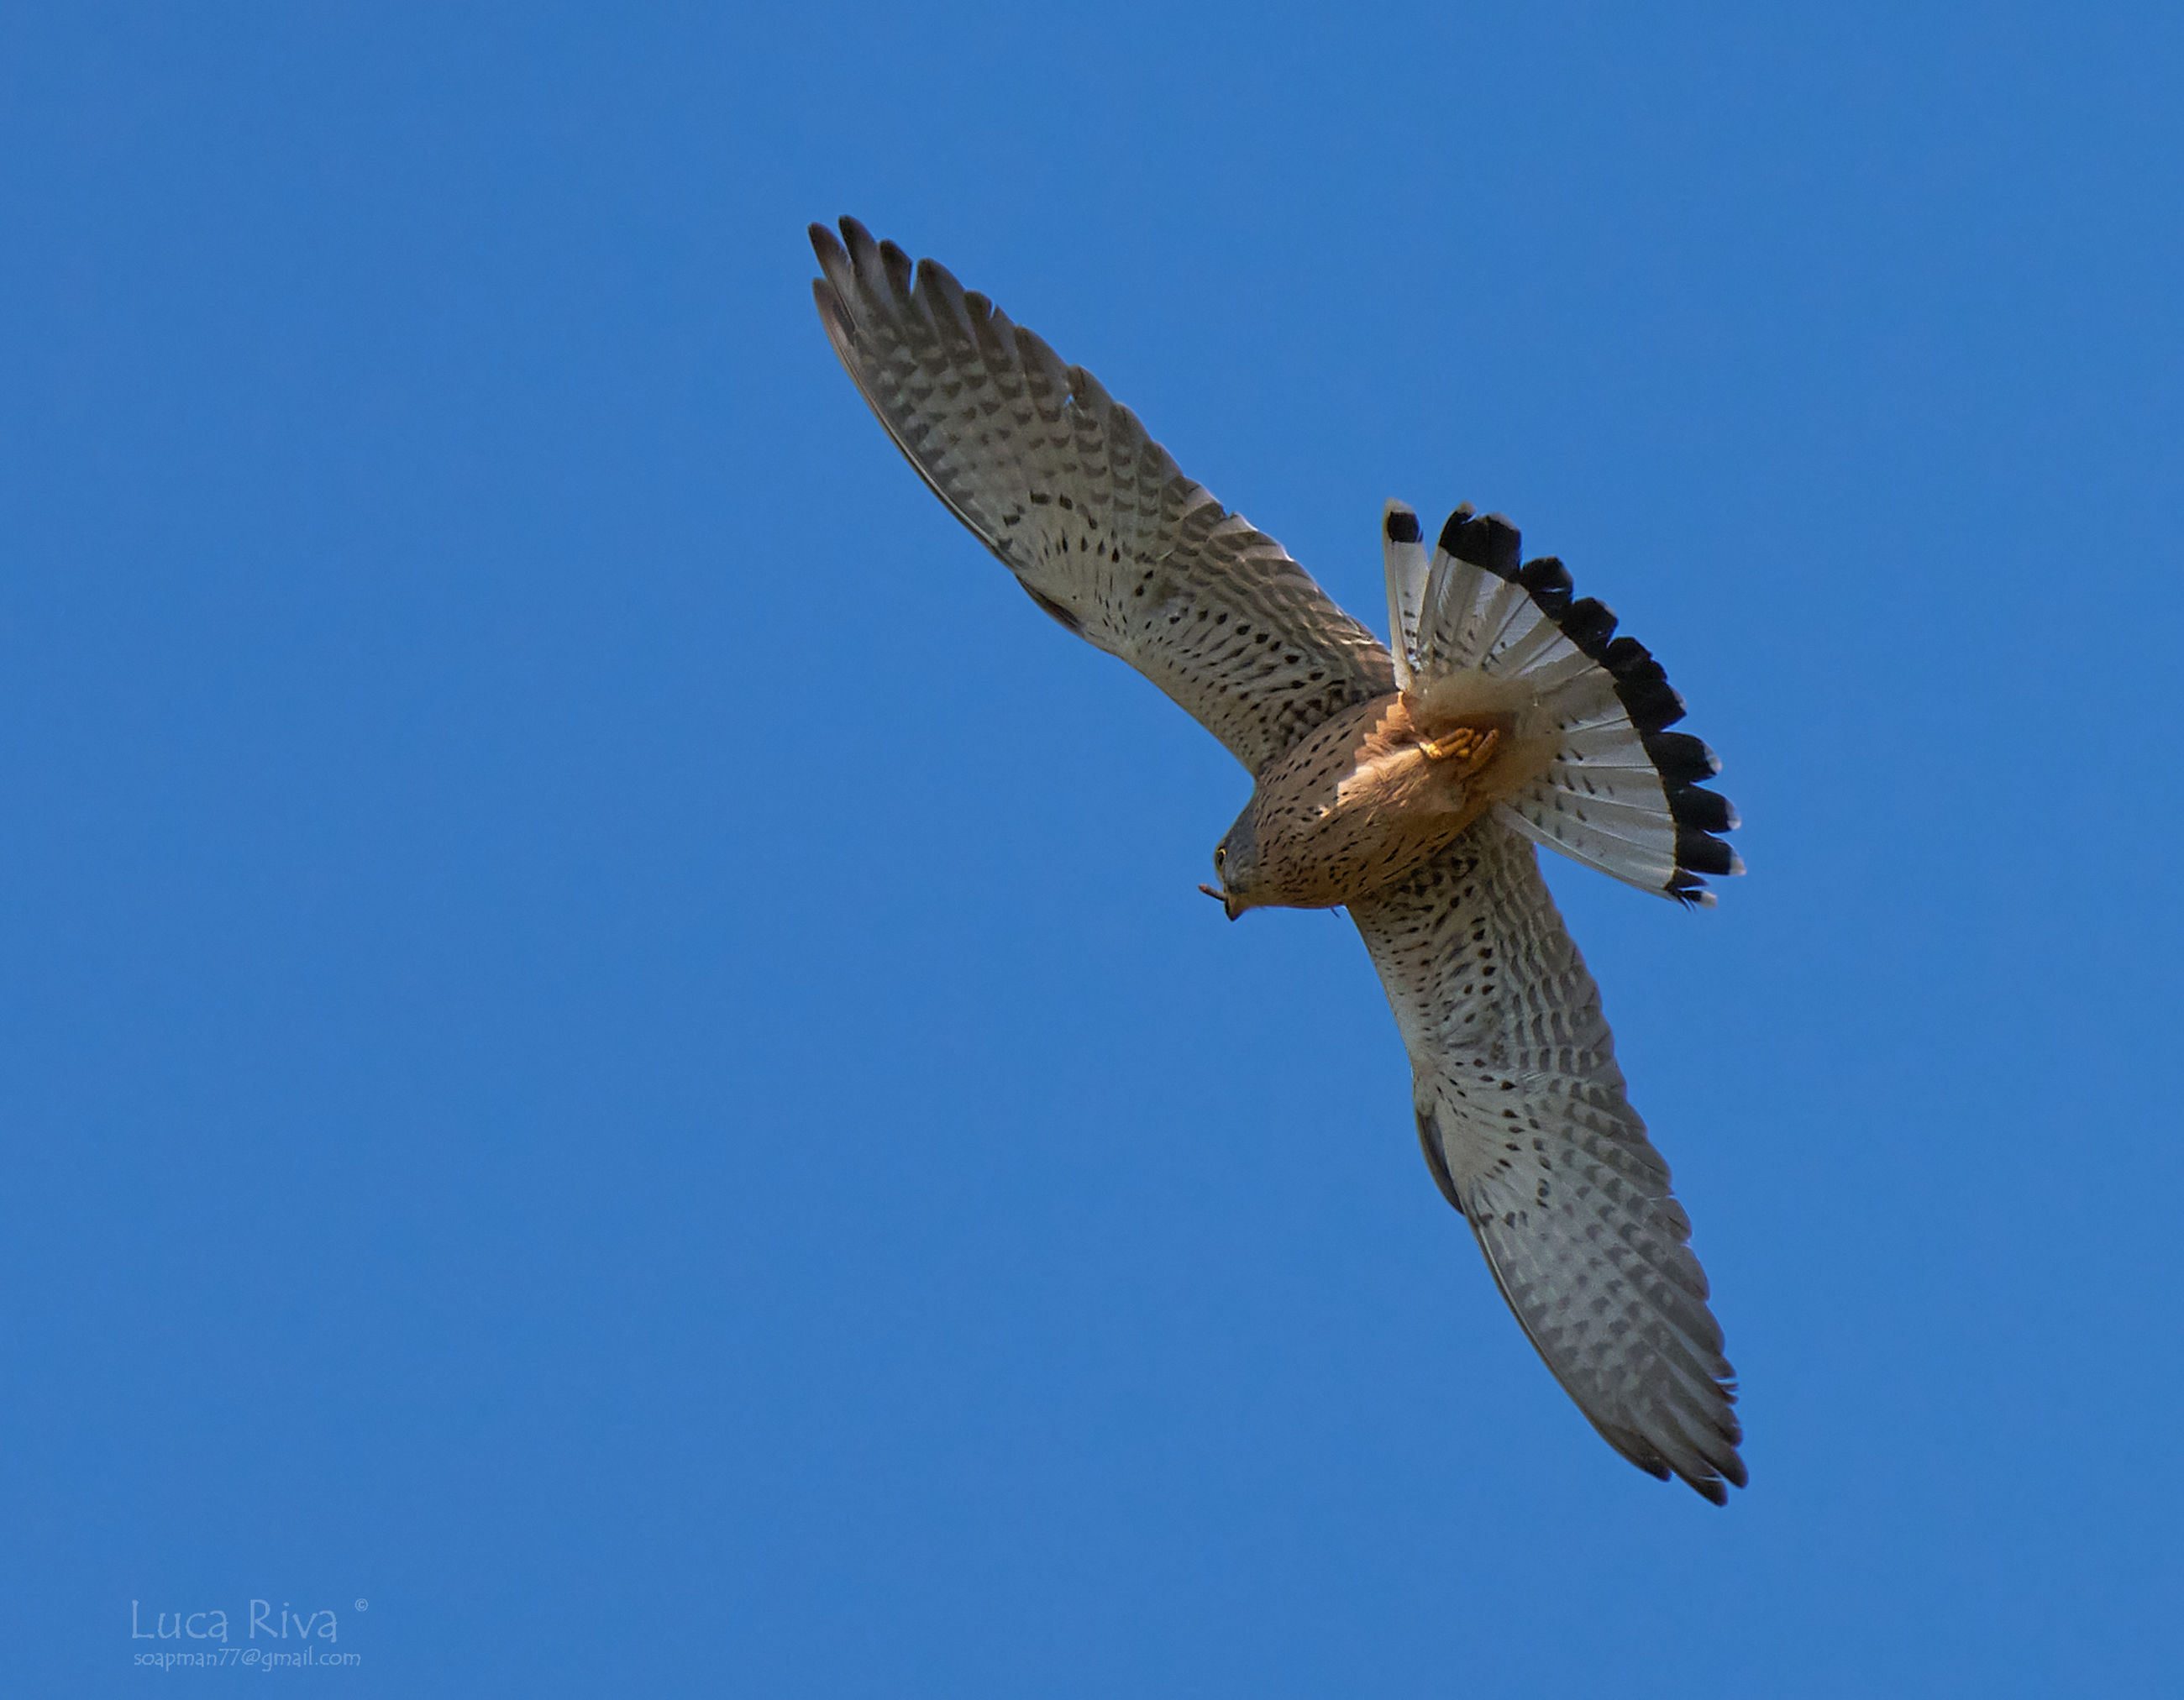 animal, animal themes, bird, animal wildlife, flying, wildlife, one animal, spread wings, blue, falcon, sky, bird of prey, clear sky, animal body part, nature, wing, no people, mid-air, animal wing, hawk, low angle view, motion, buzzard, day, outdoors, falcon - bird, eagle, beauty in nature, sunny, beak, copy space, full length